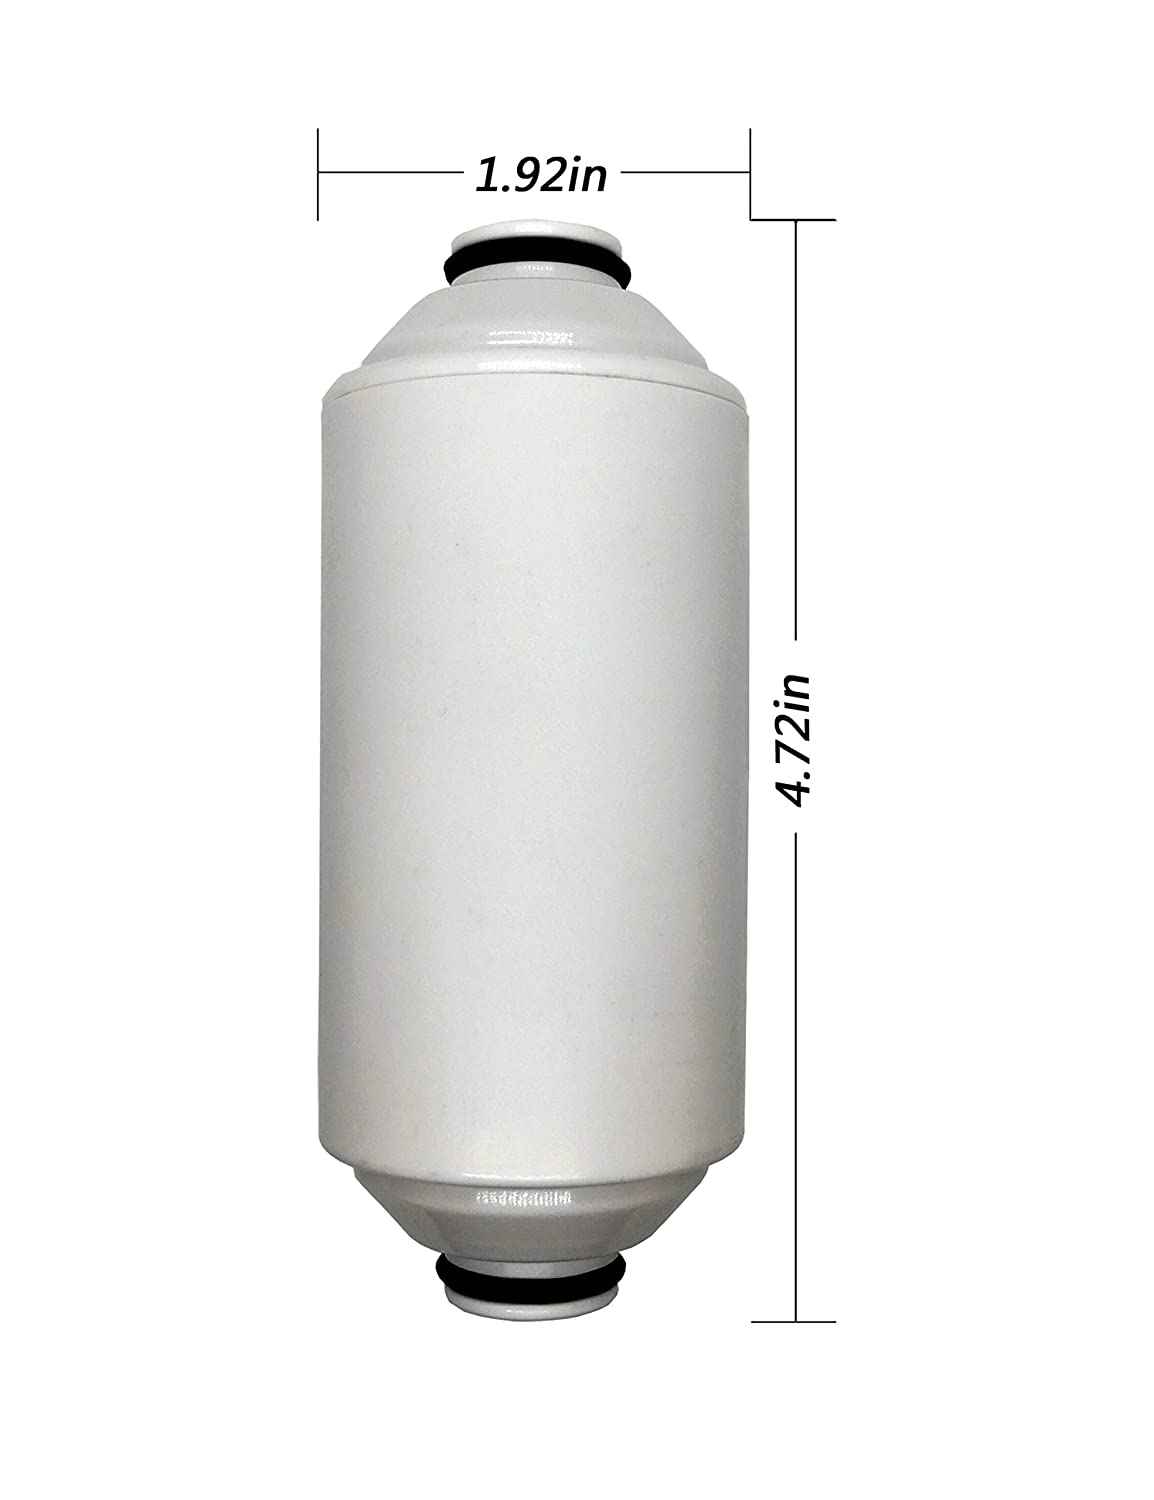 ZTSXLLIM 12 Stage Filter Cartridge for Shower Filter,Removes Chlorine and Heavy Metal and Other Harmful Substances,Adds Vitamin C to Improve The Condition of Skin and Hair